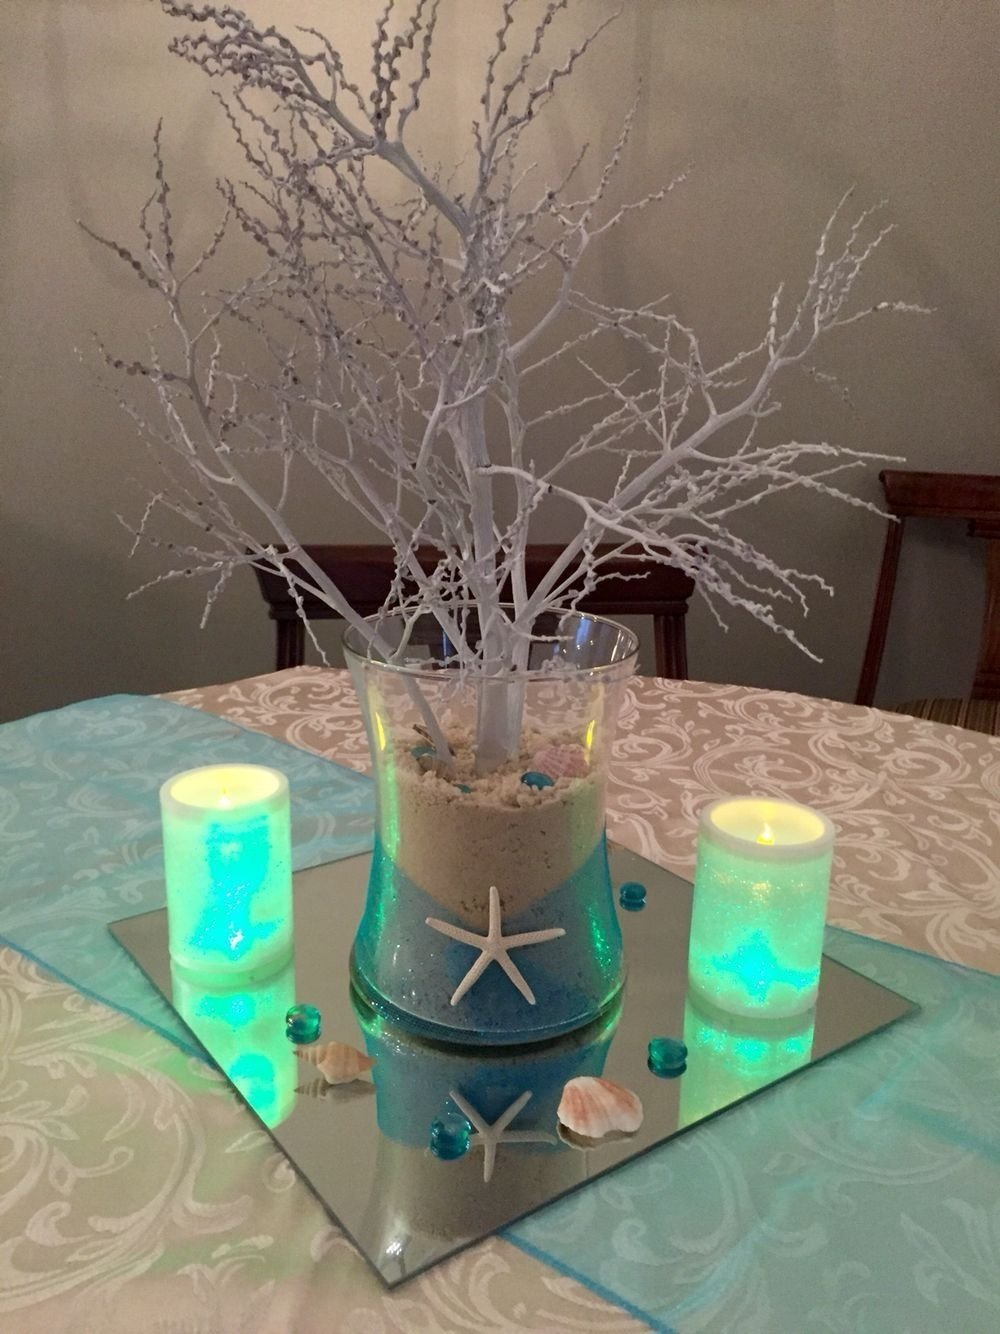 10 Fabulous Under The Sea Centerpiece Ideas pinmaryann on centros de mesa pinterest quinceanera ideas 2020